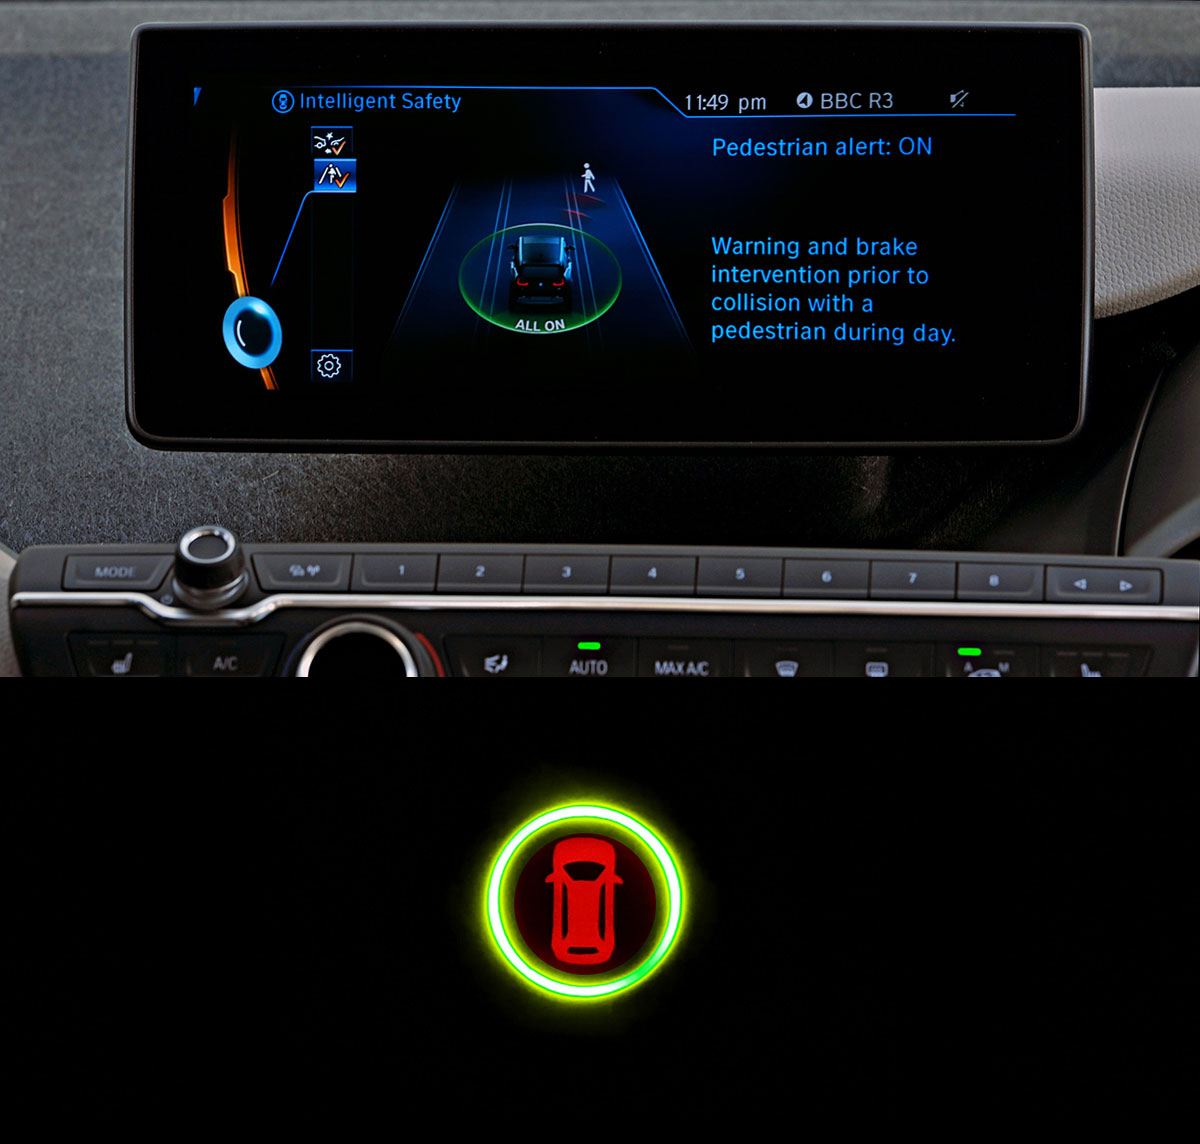 BMW i3 Intelligent Safety On